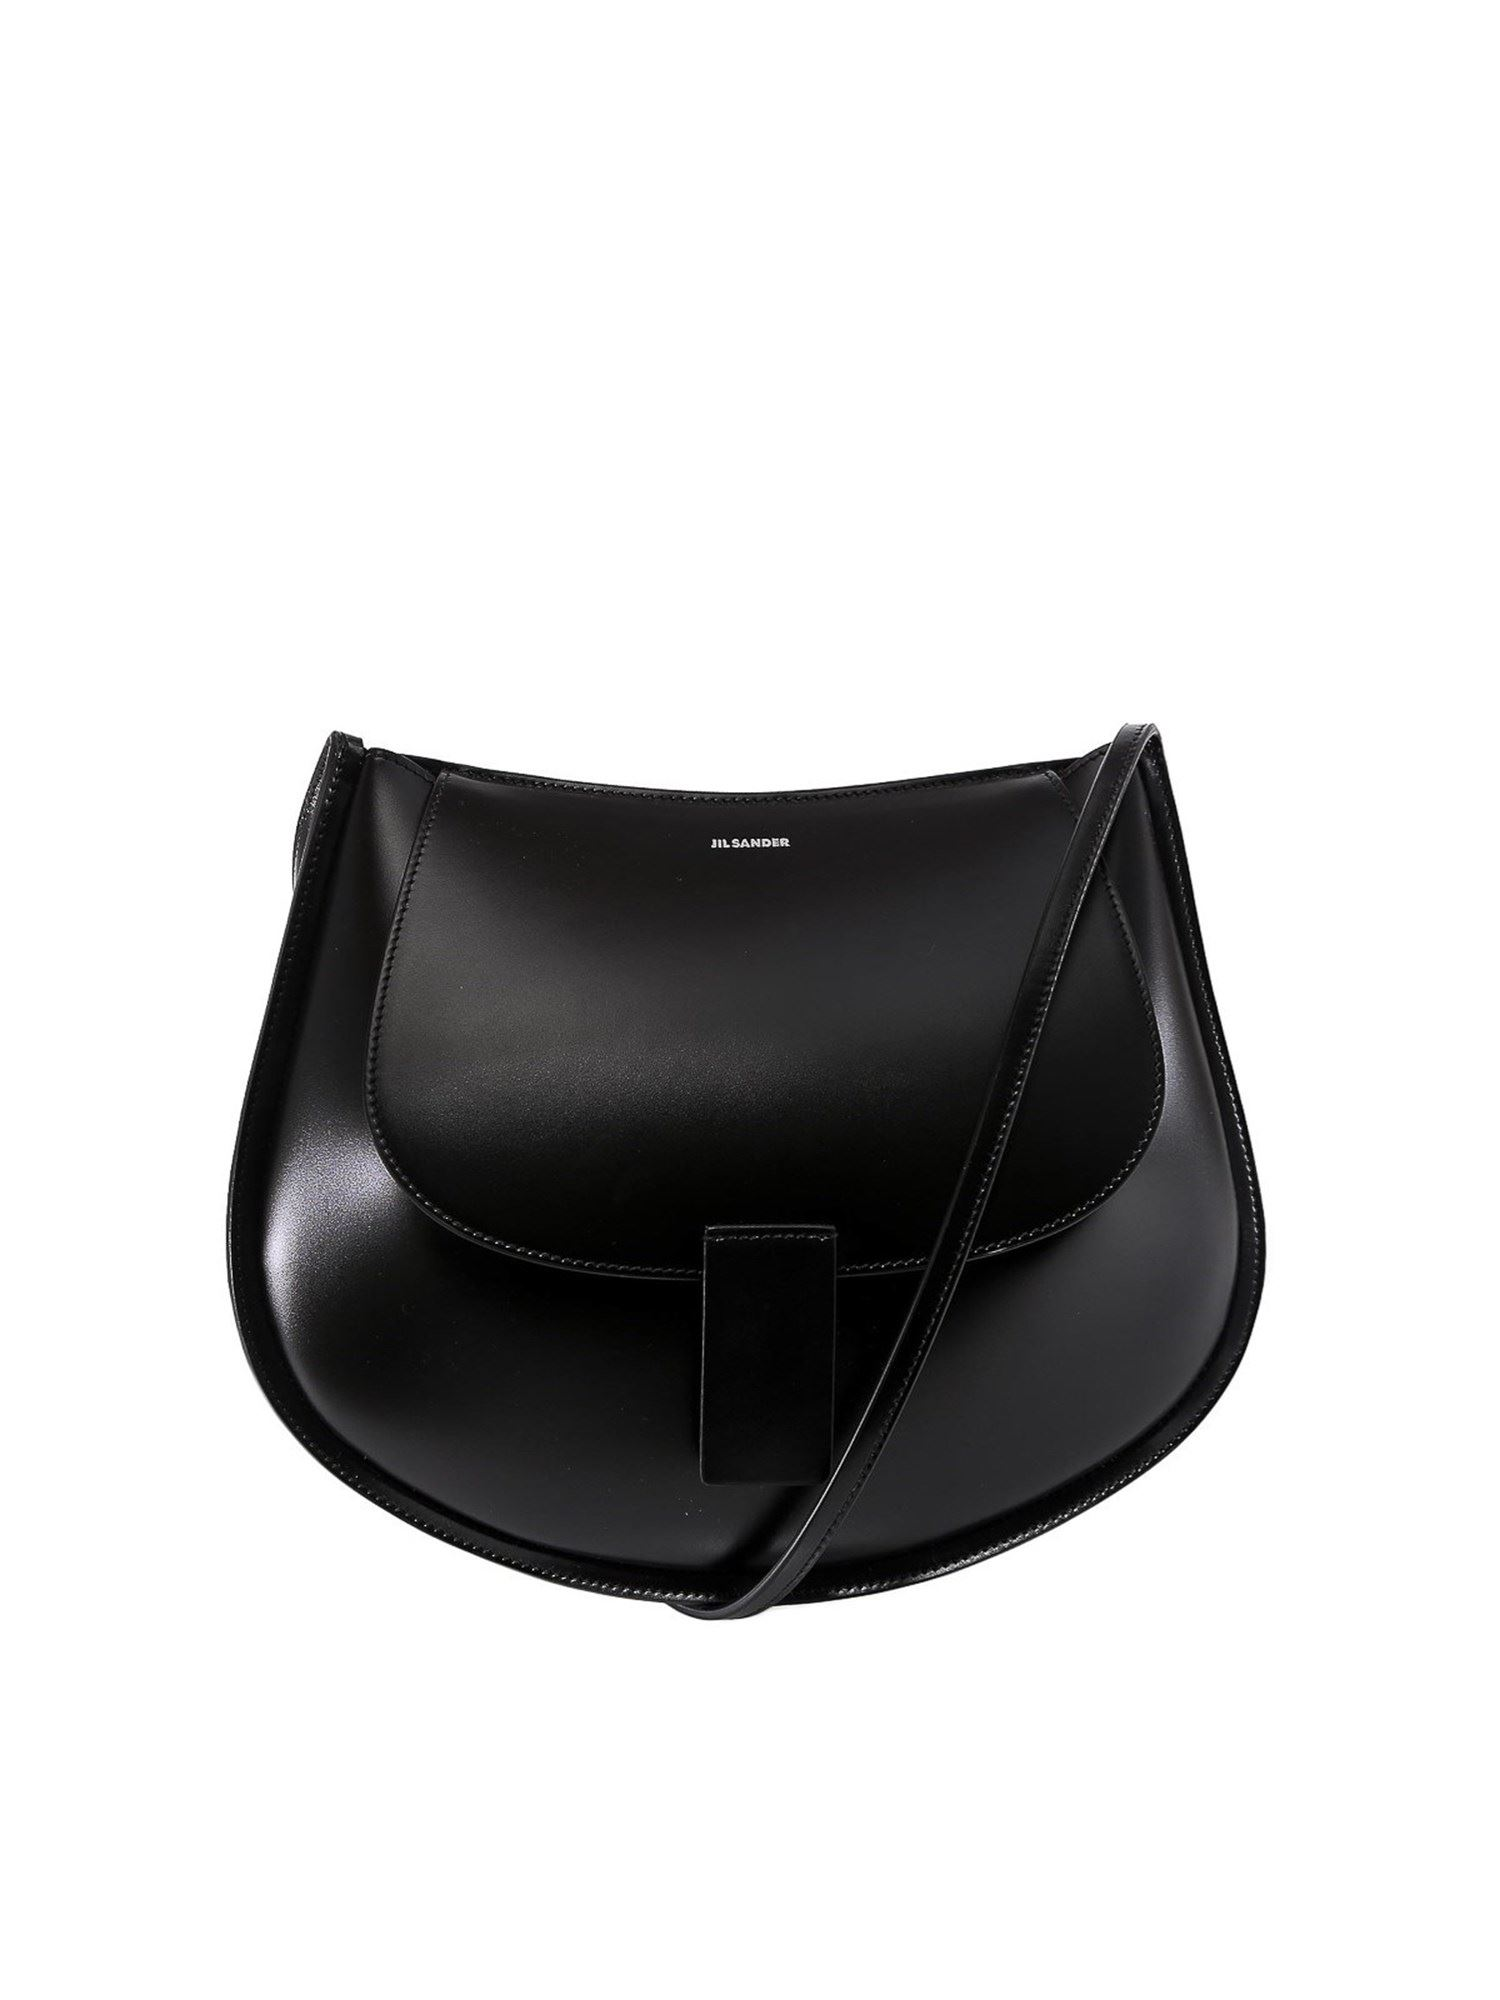 JIL SANDER SMOOTH LEATHER CRESCENT CROSS BODY BAG